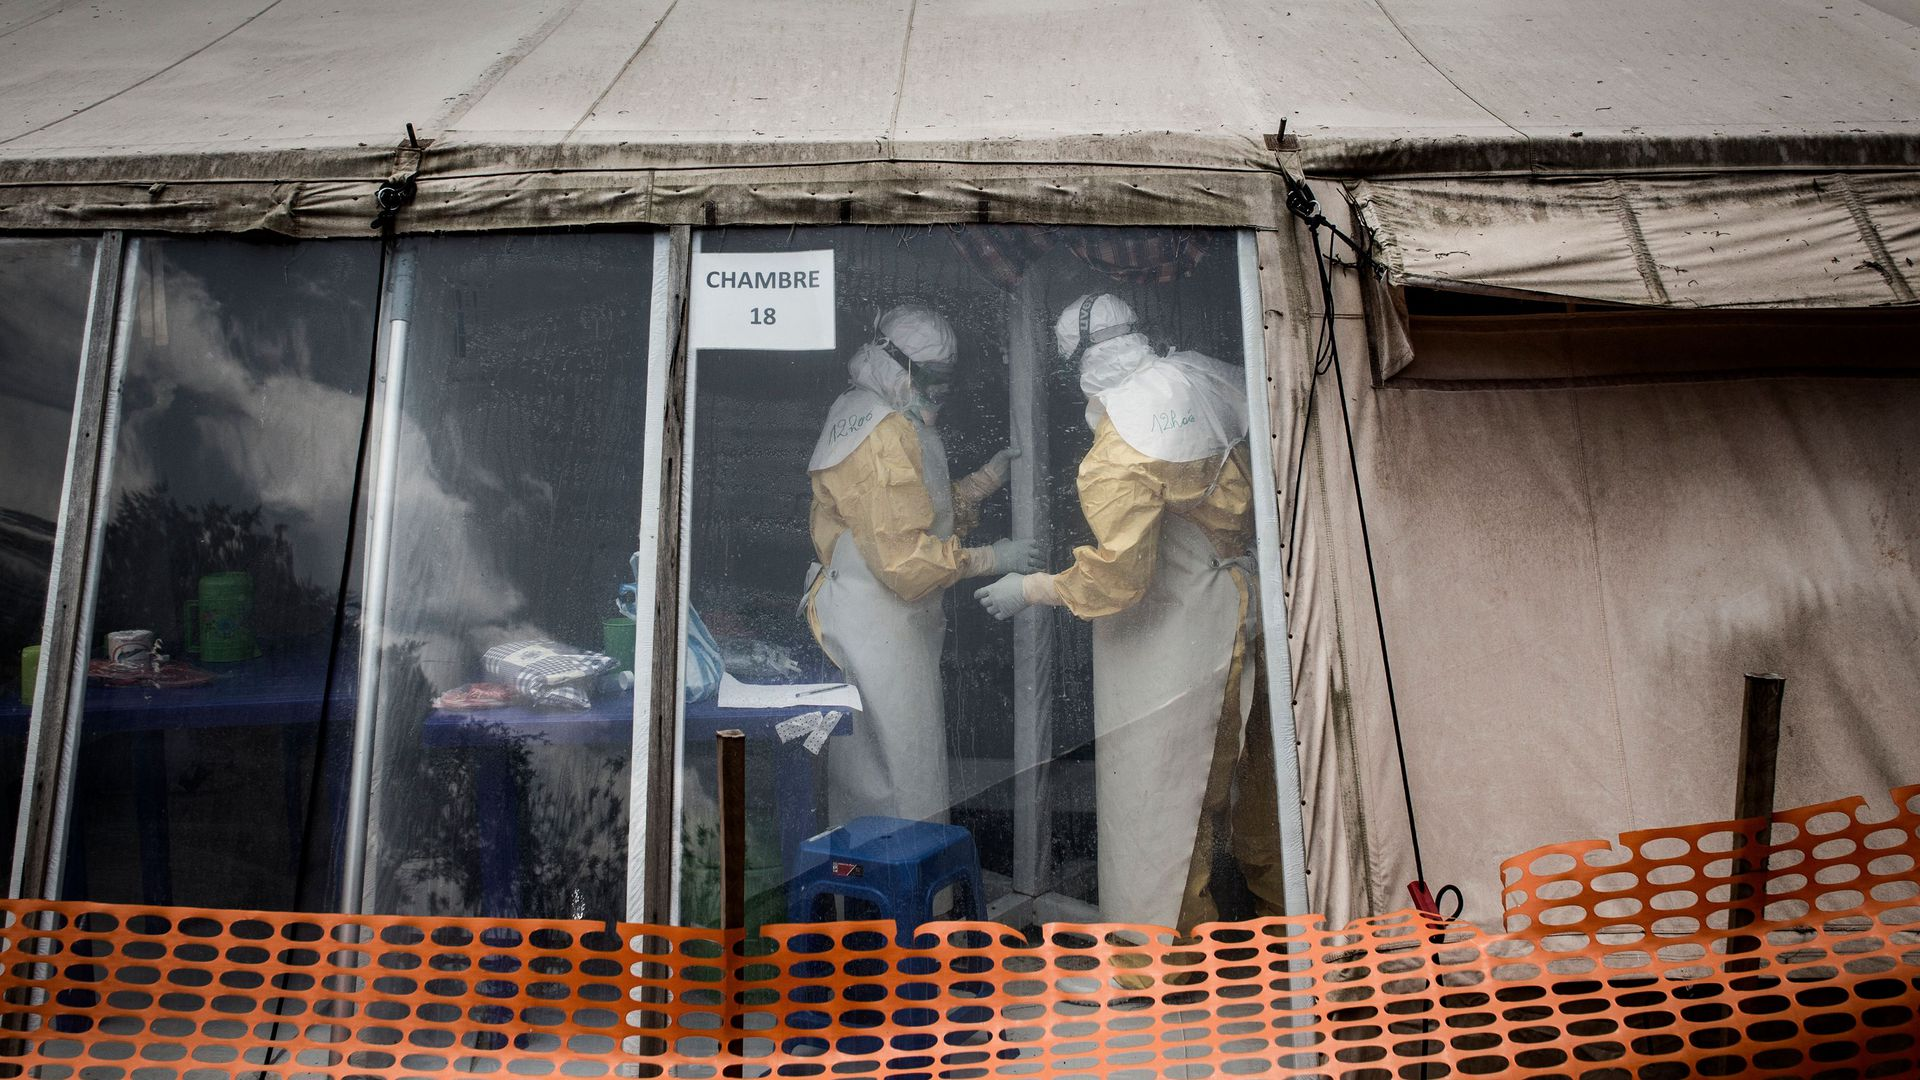 Health workers in hazmat suits are seen inside the 'red zone' of an Ebola treatment centre, behind an orange barrier.